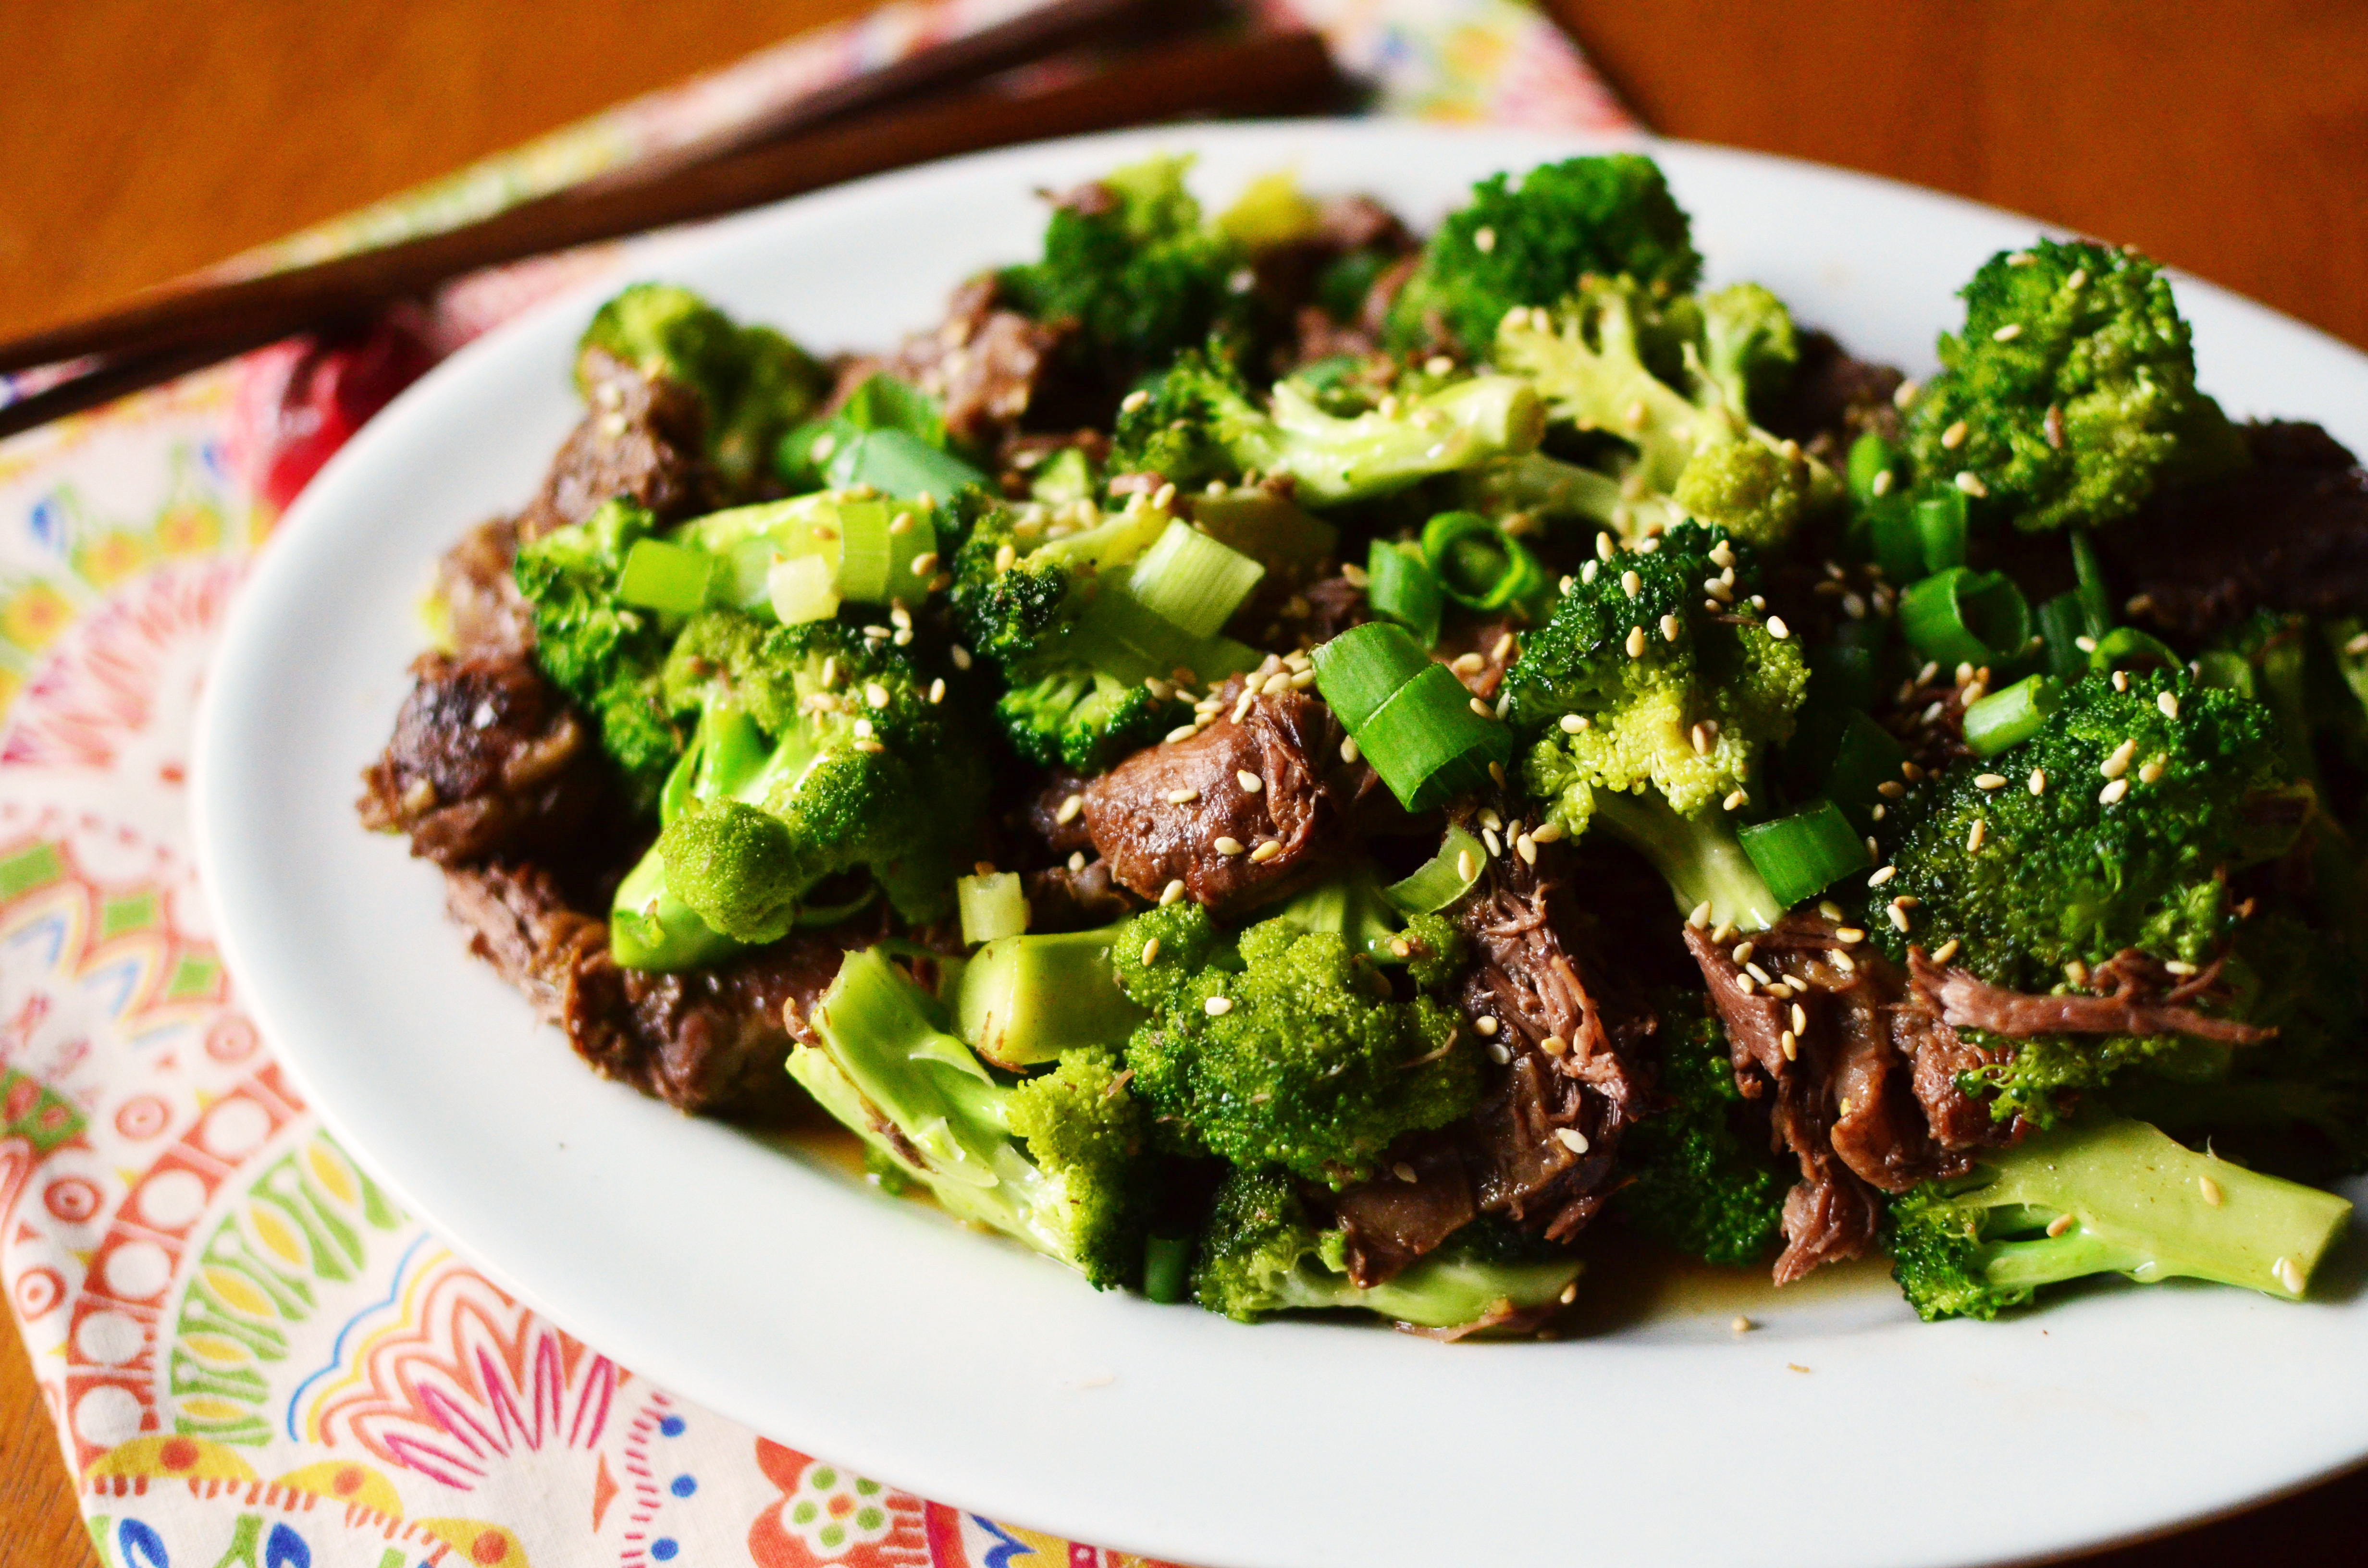 Beef And Broccoli Slow Cooker  Slow Cooker Beef and Broccoli Simple Sweet & Savory